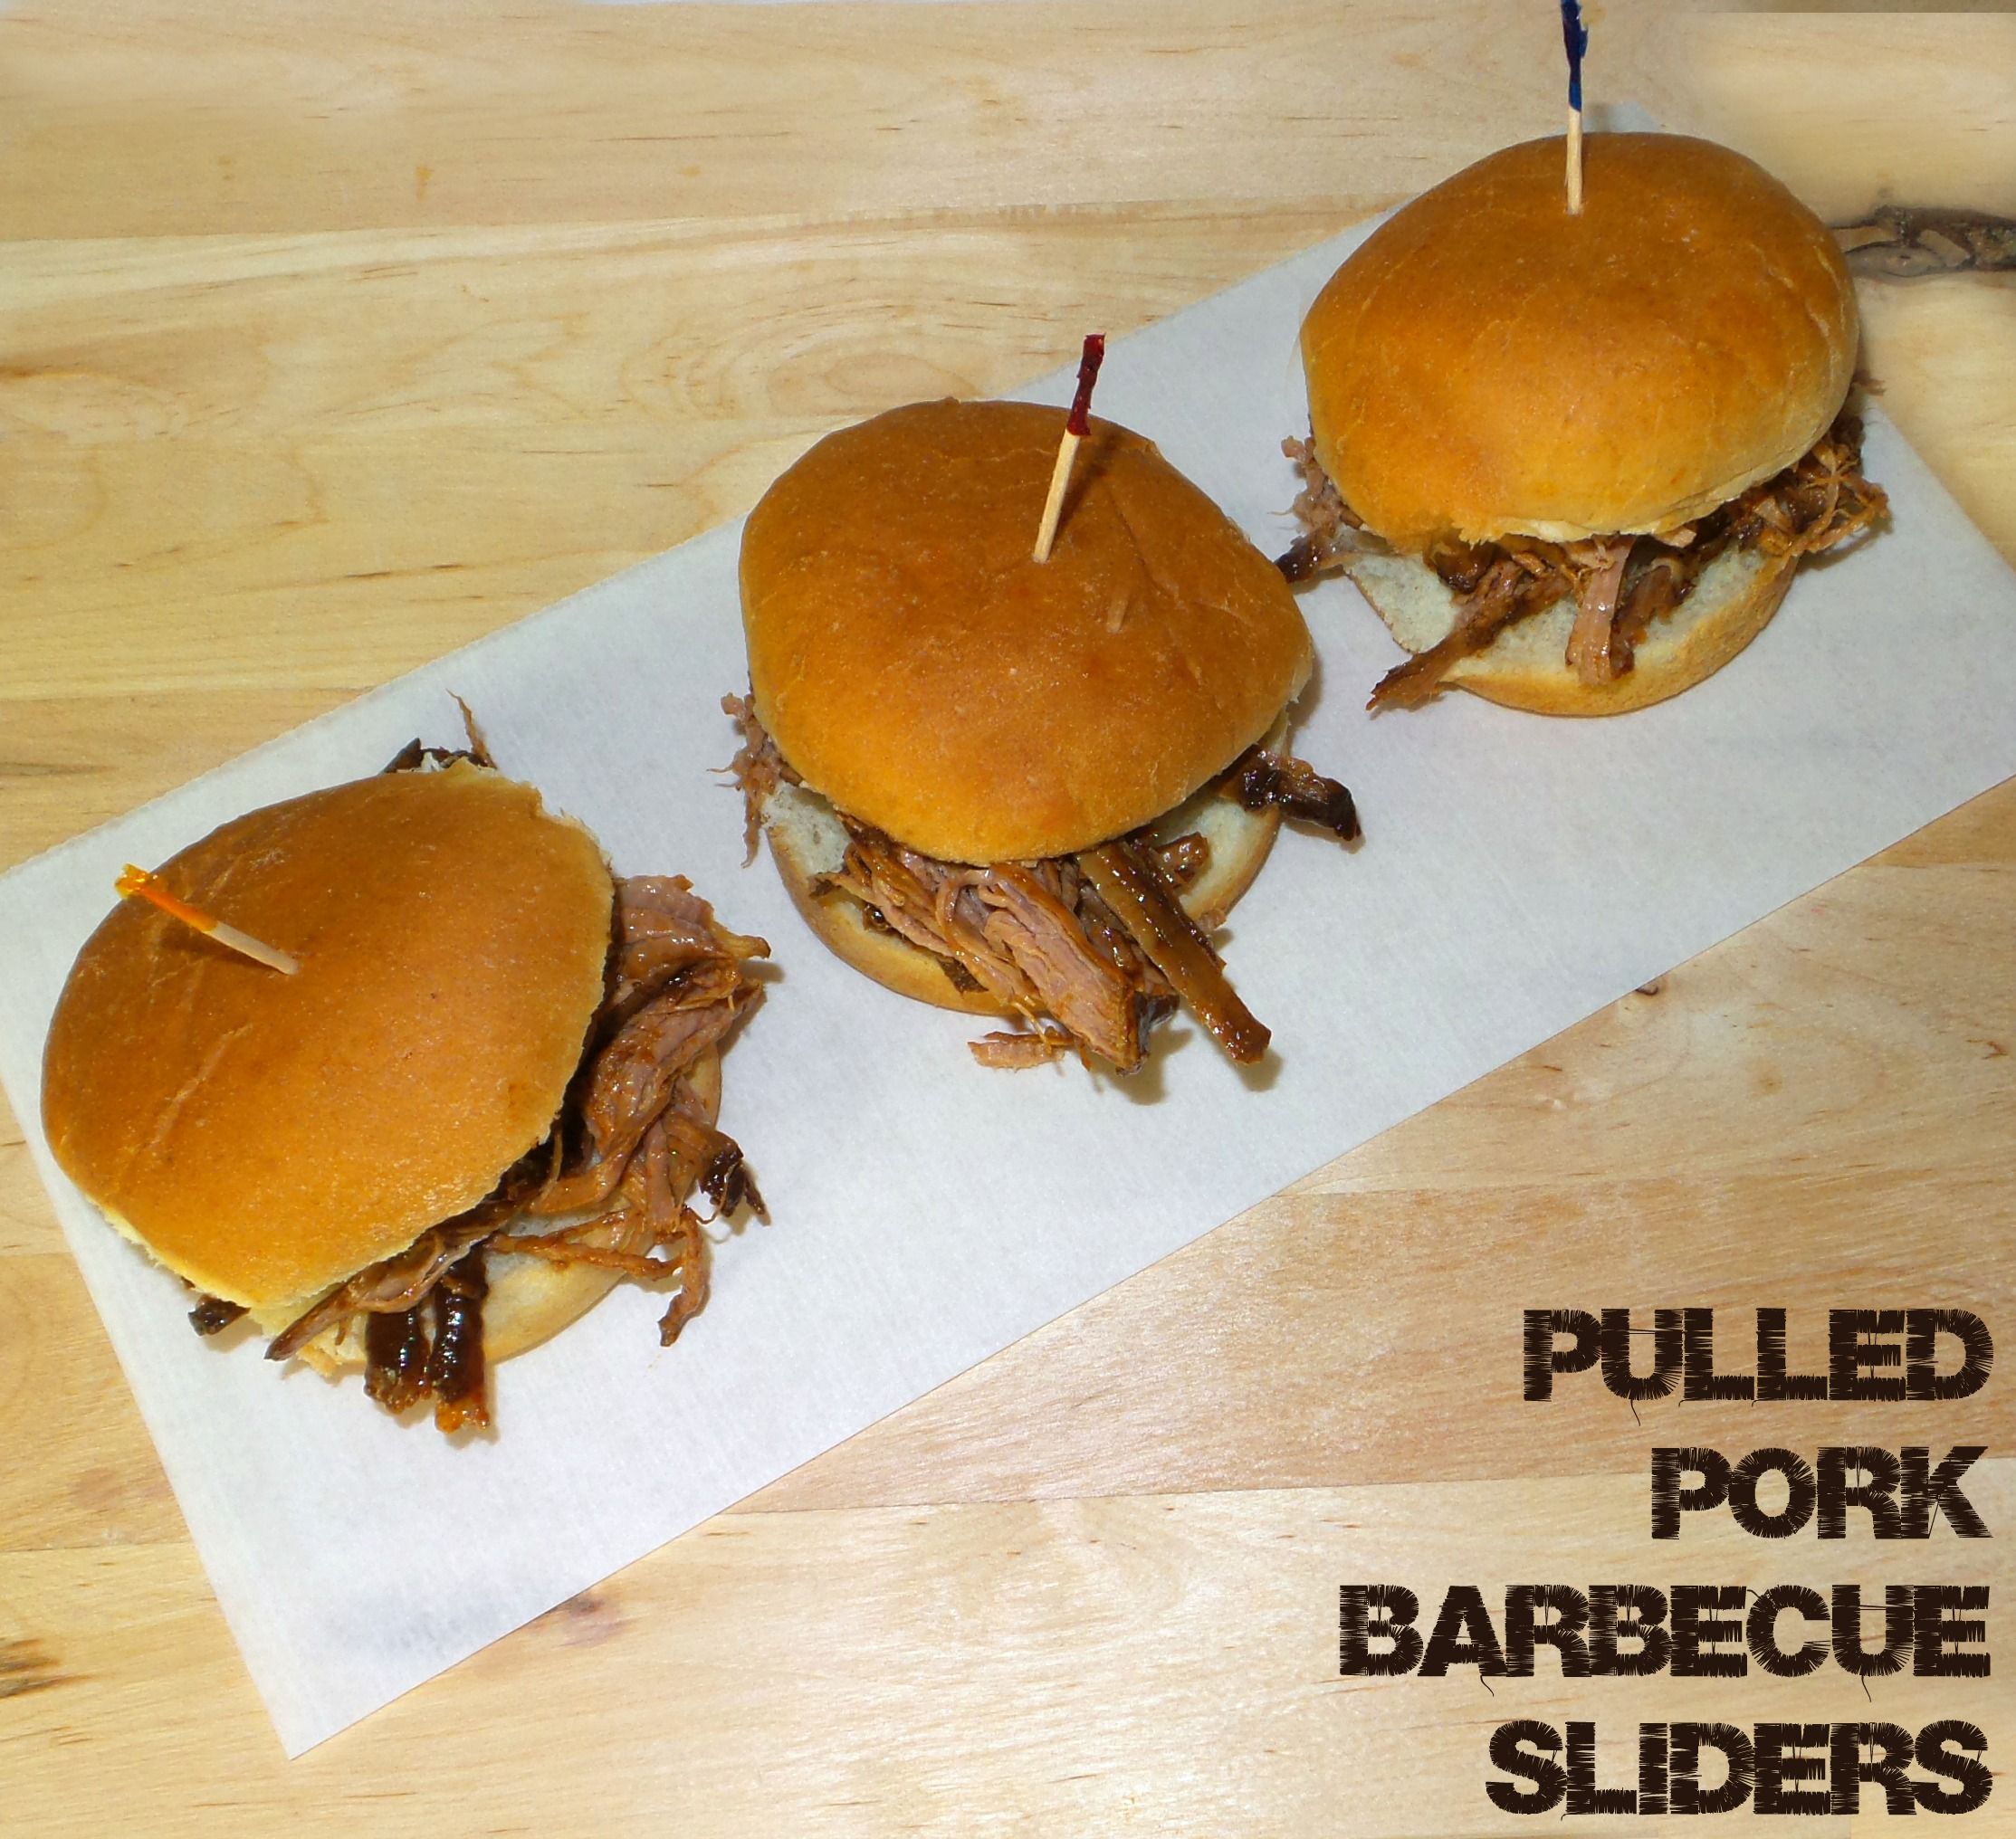 crock pot pulled pork barbecue sliders